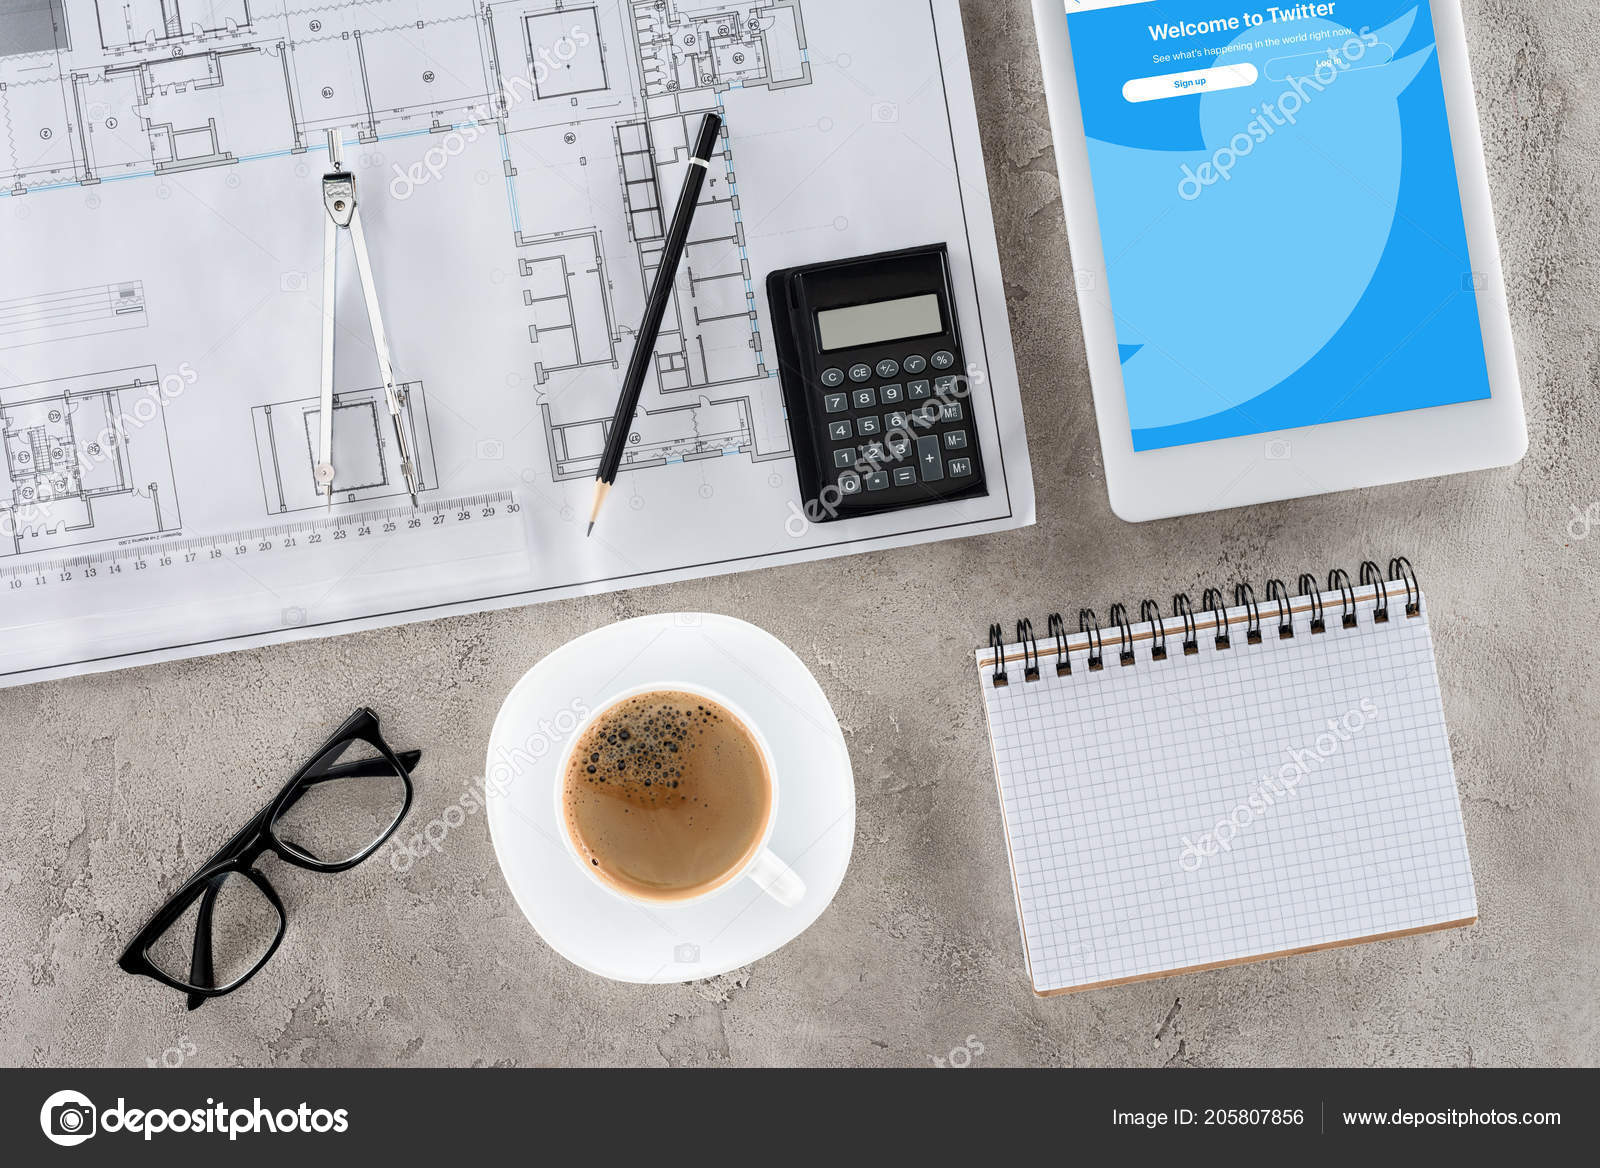 Top view architect workplace blueprint divider coffee digital tablet top view architect workplace blueprint divider coffee digital tablet twitter stock photo malvernweather Images